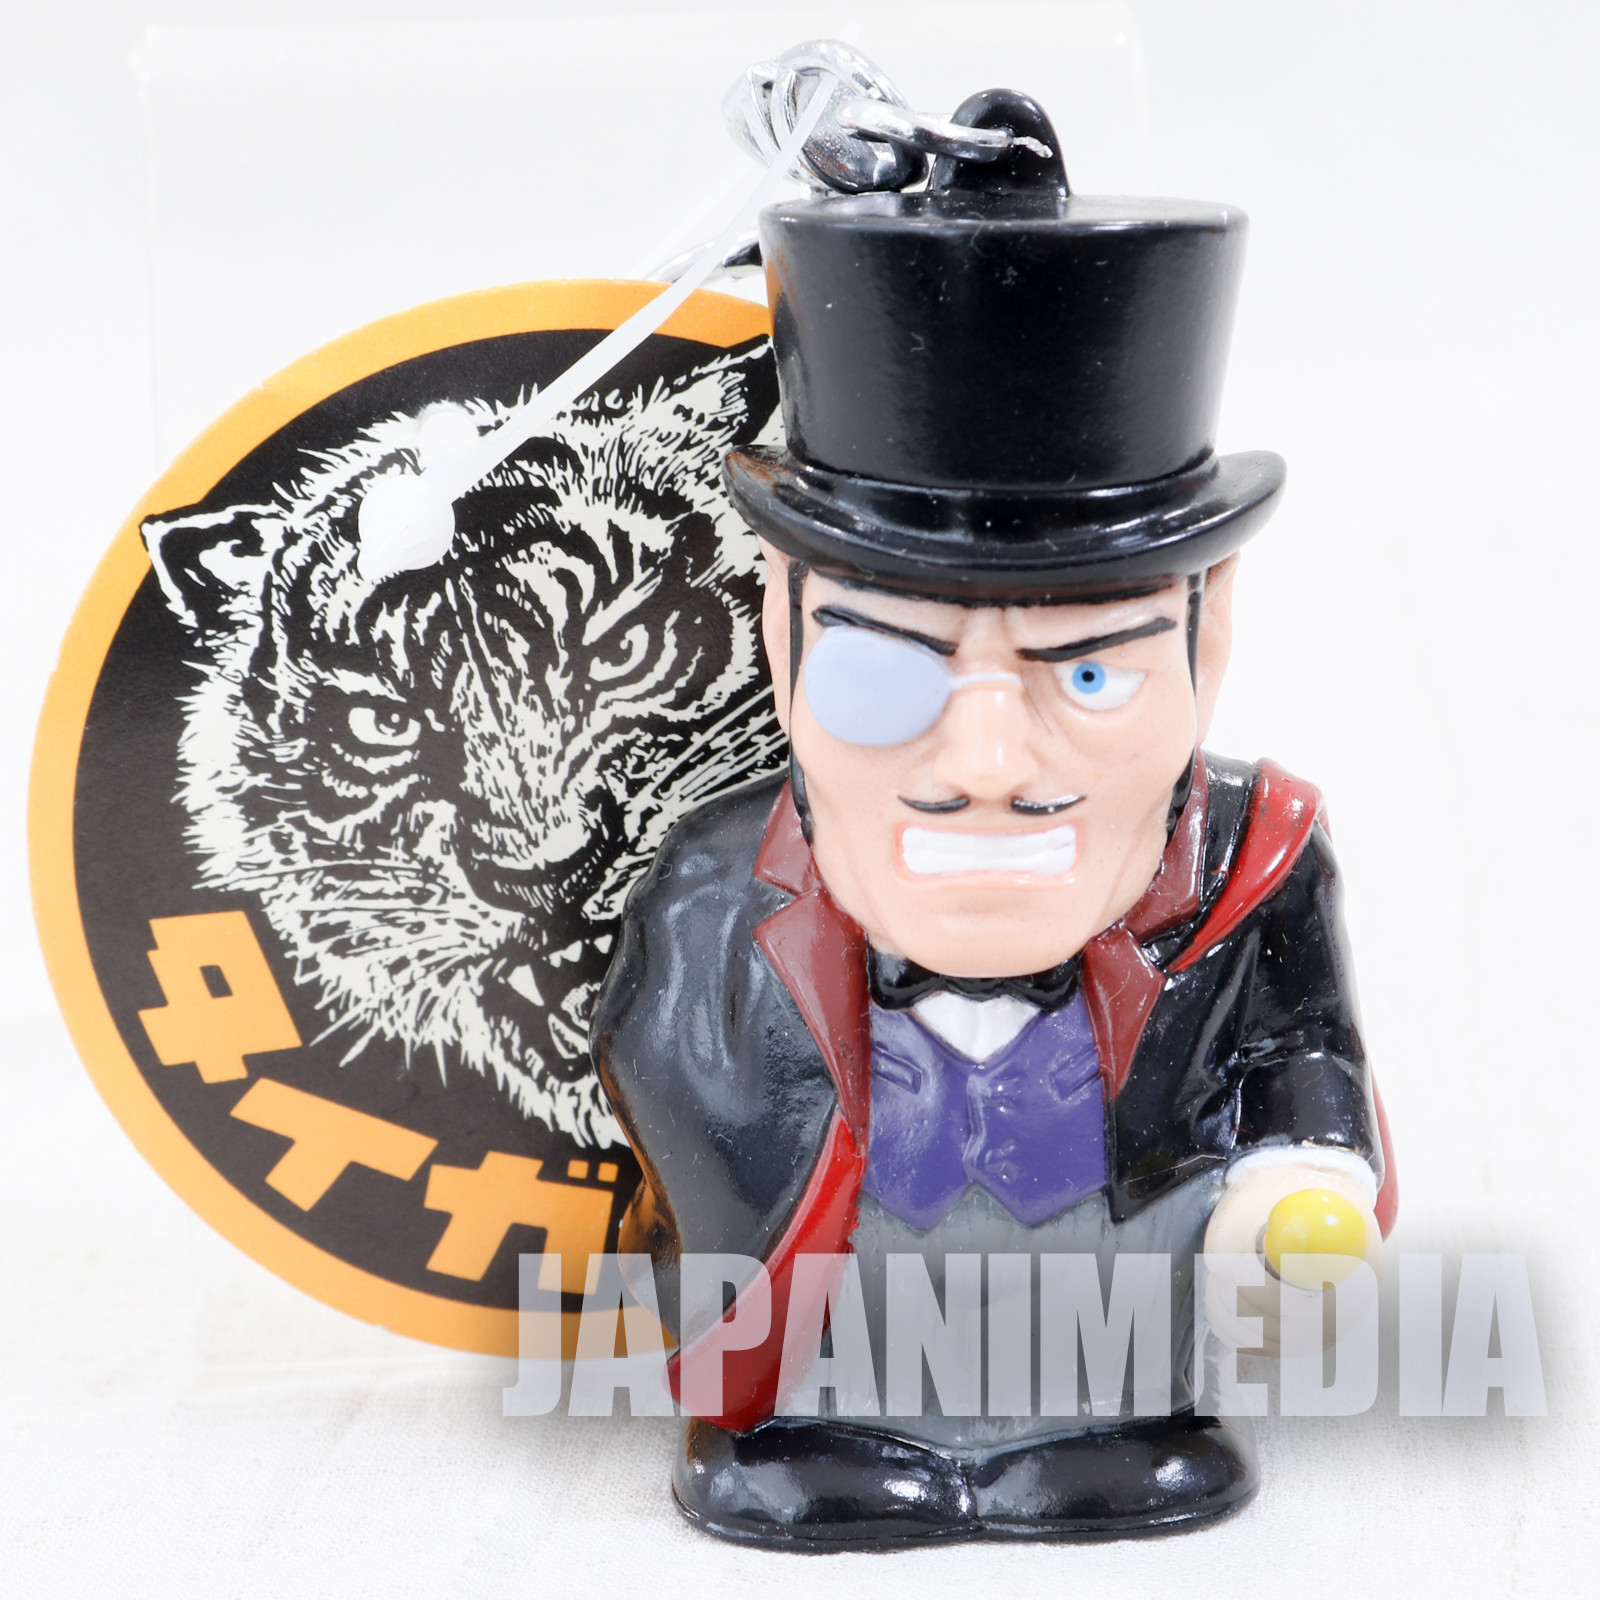 Tiger Mask Mister X Mascot Figure Key Chain JAPAN ANIME MANGA Pro Wrestling